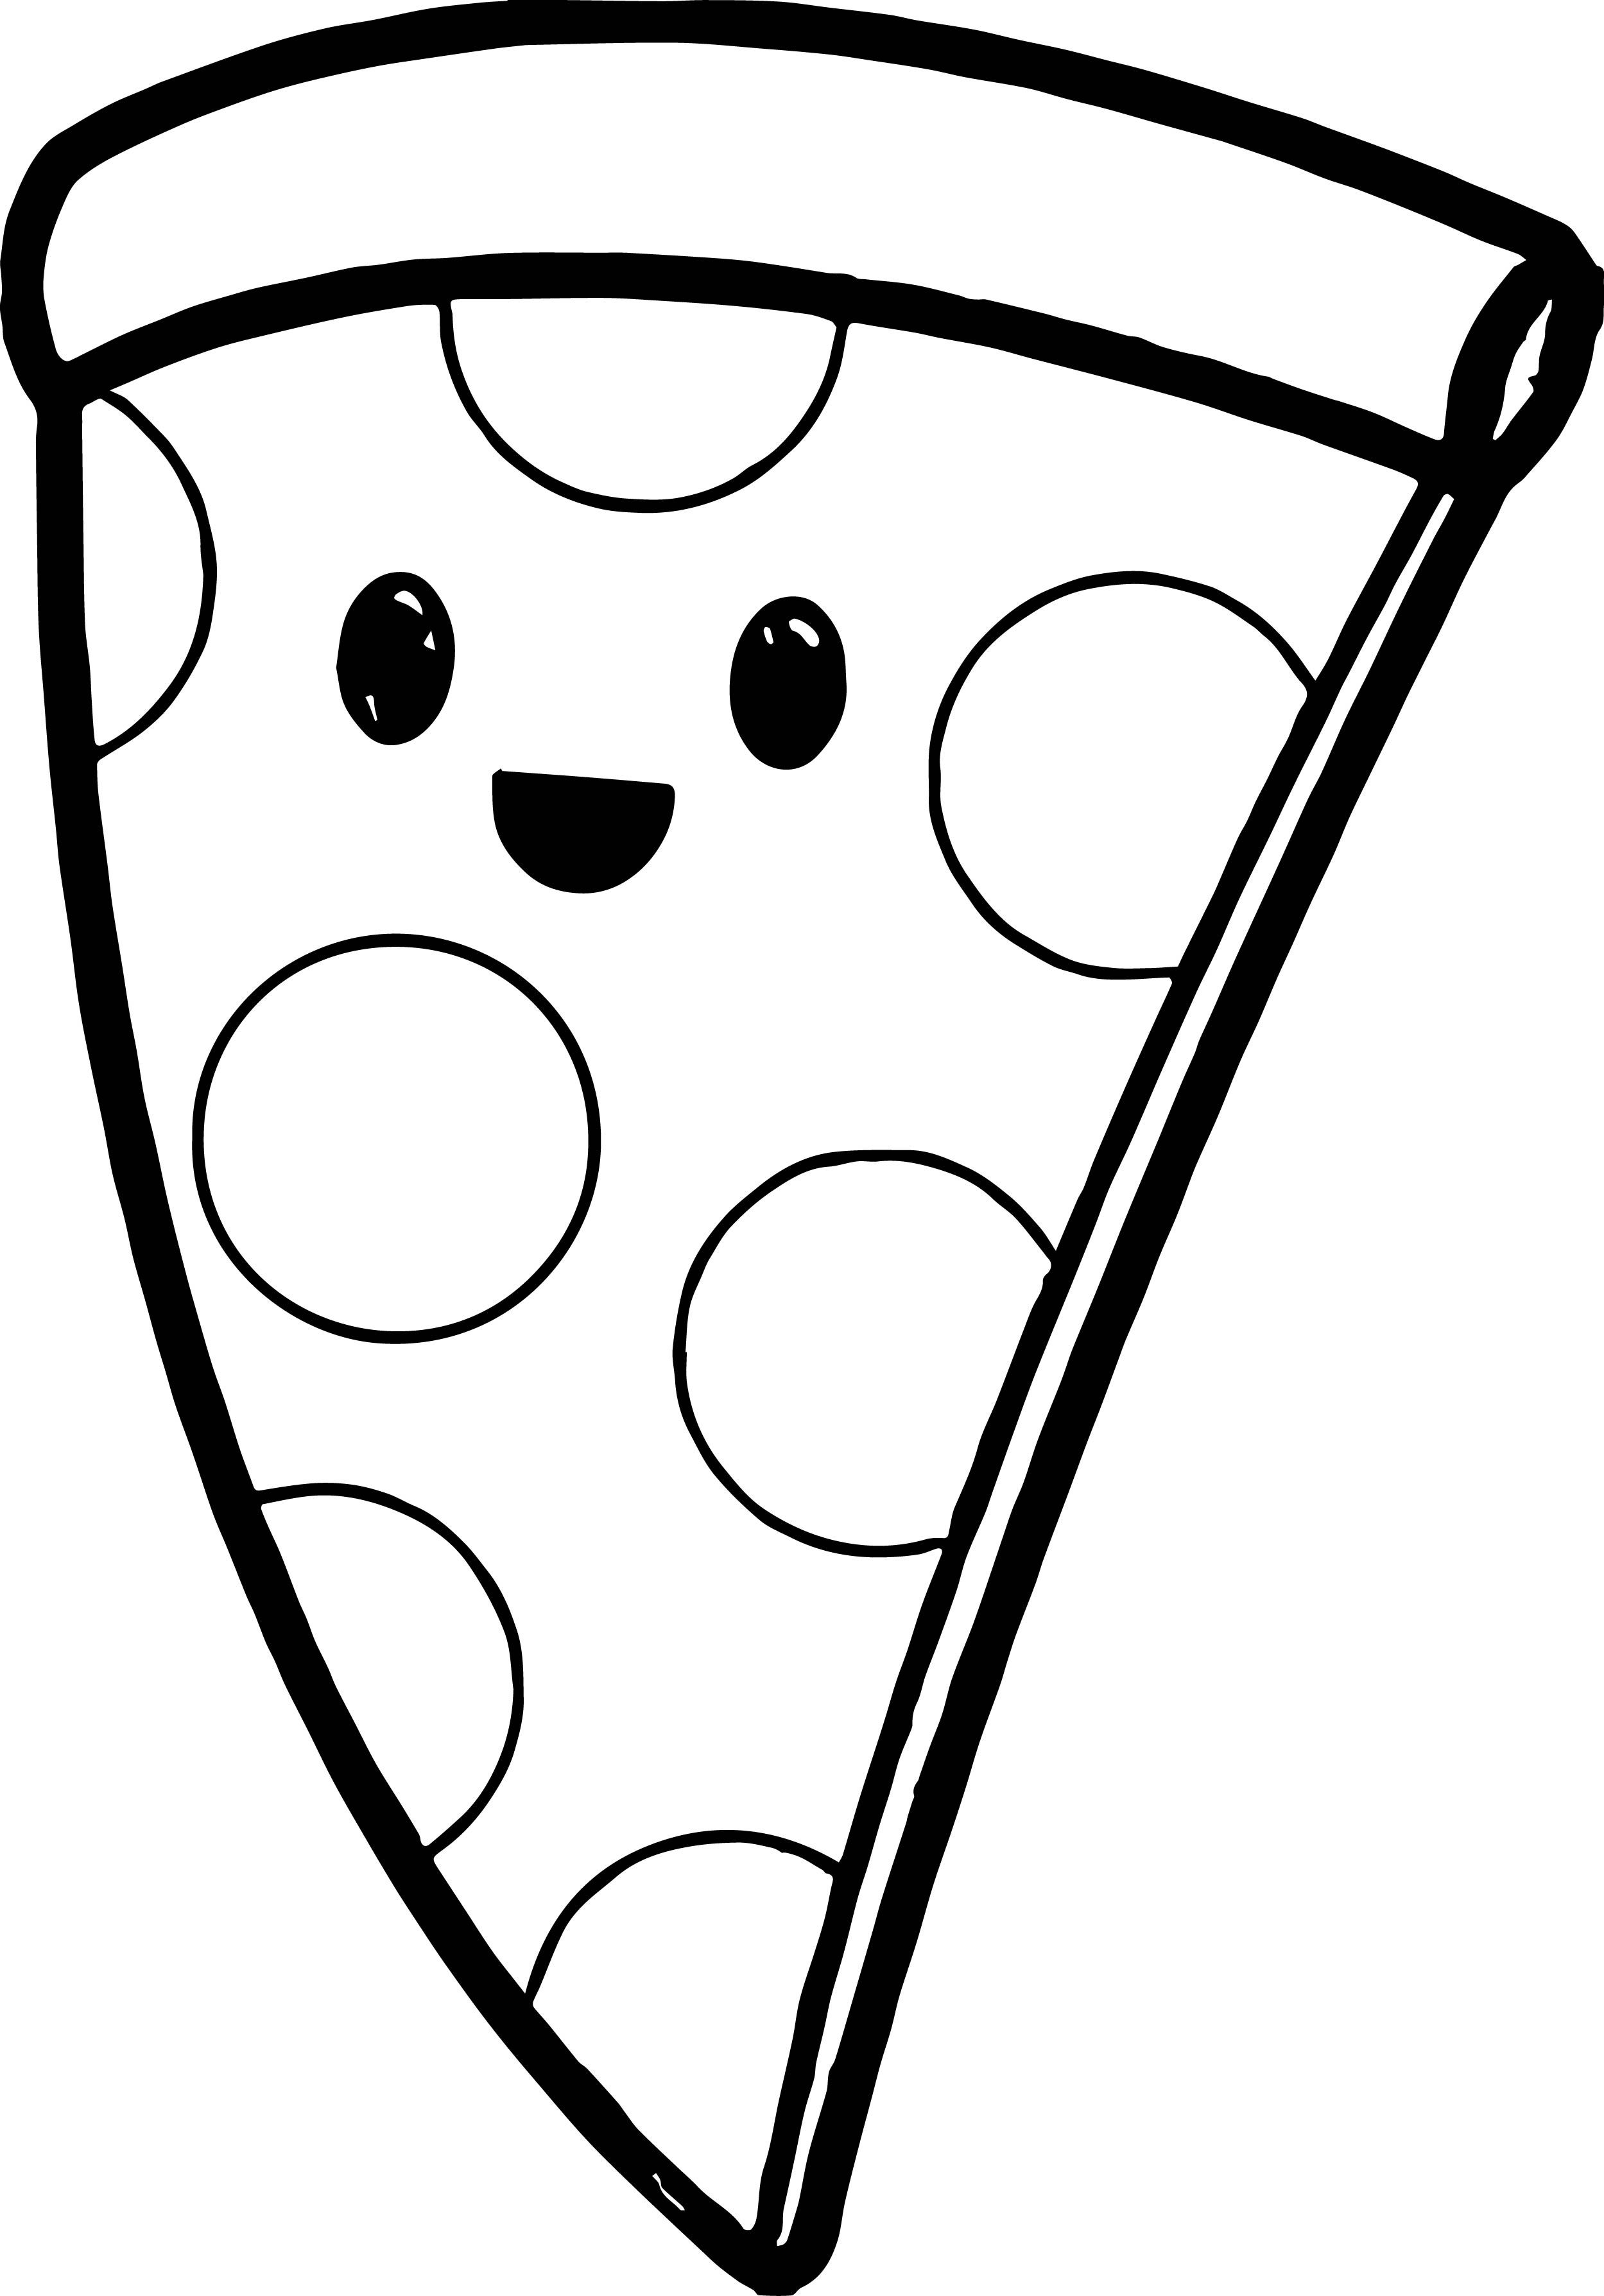 Pin By Tina Ellis On Free Coloring Pages Shopkins Colouring Pages Easy Coloring Pages Cute Coloring Pages